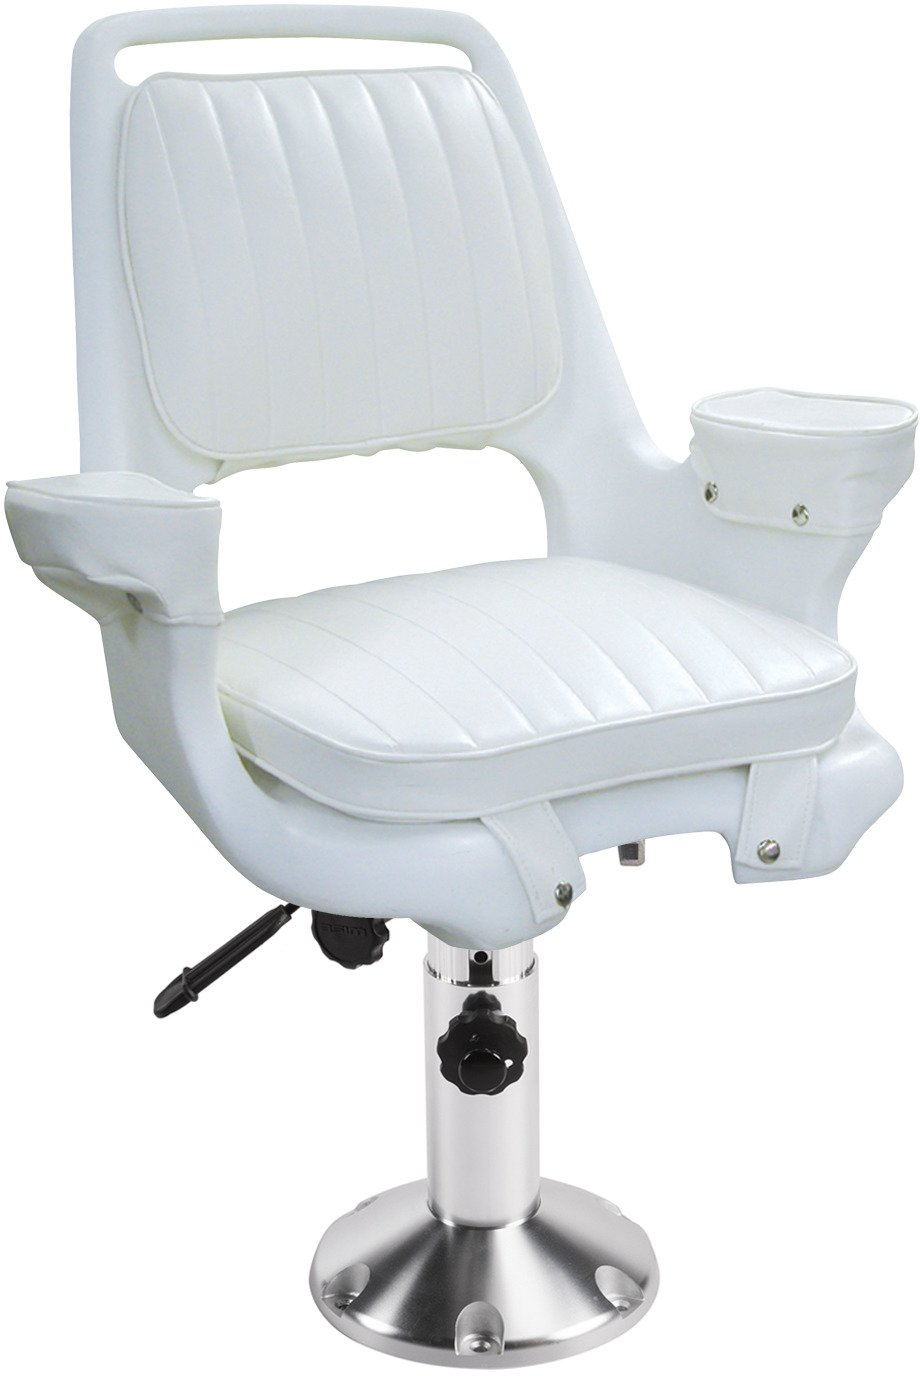 captains chair lift recliners elderly wise and pedestal set academy hover click to enlarge